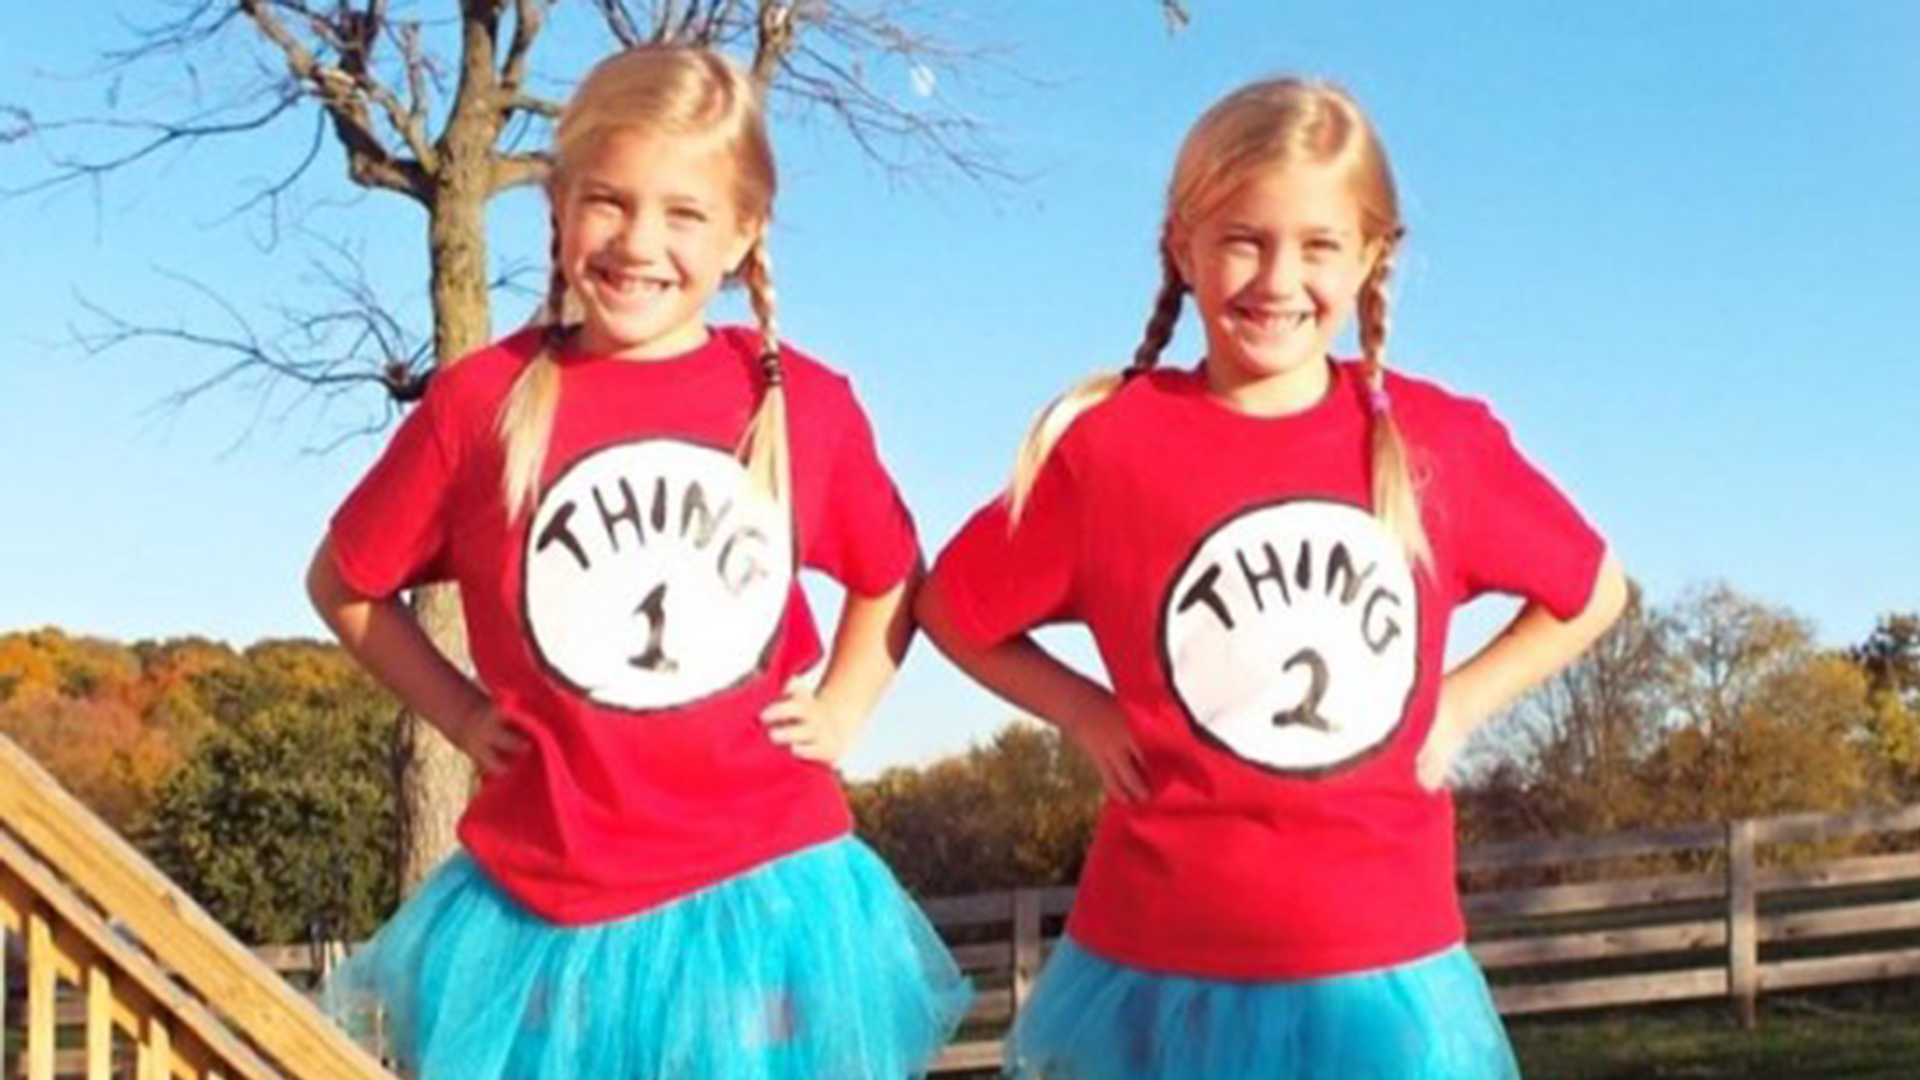 Last Minute Diy Kids Halloween Costume Thing One And Two